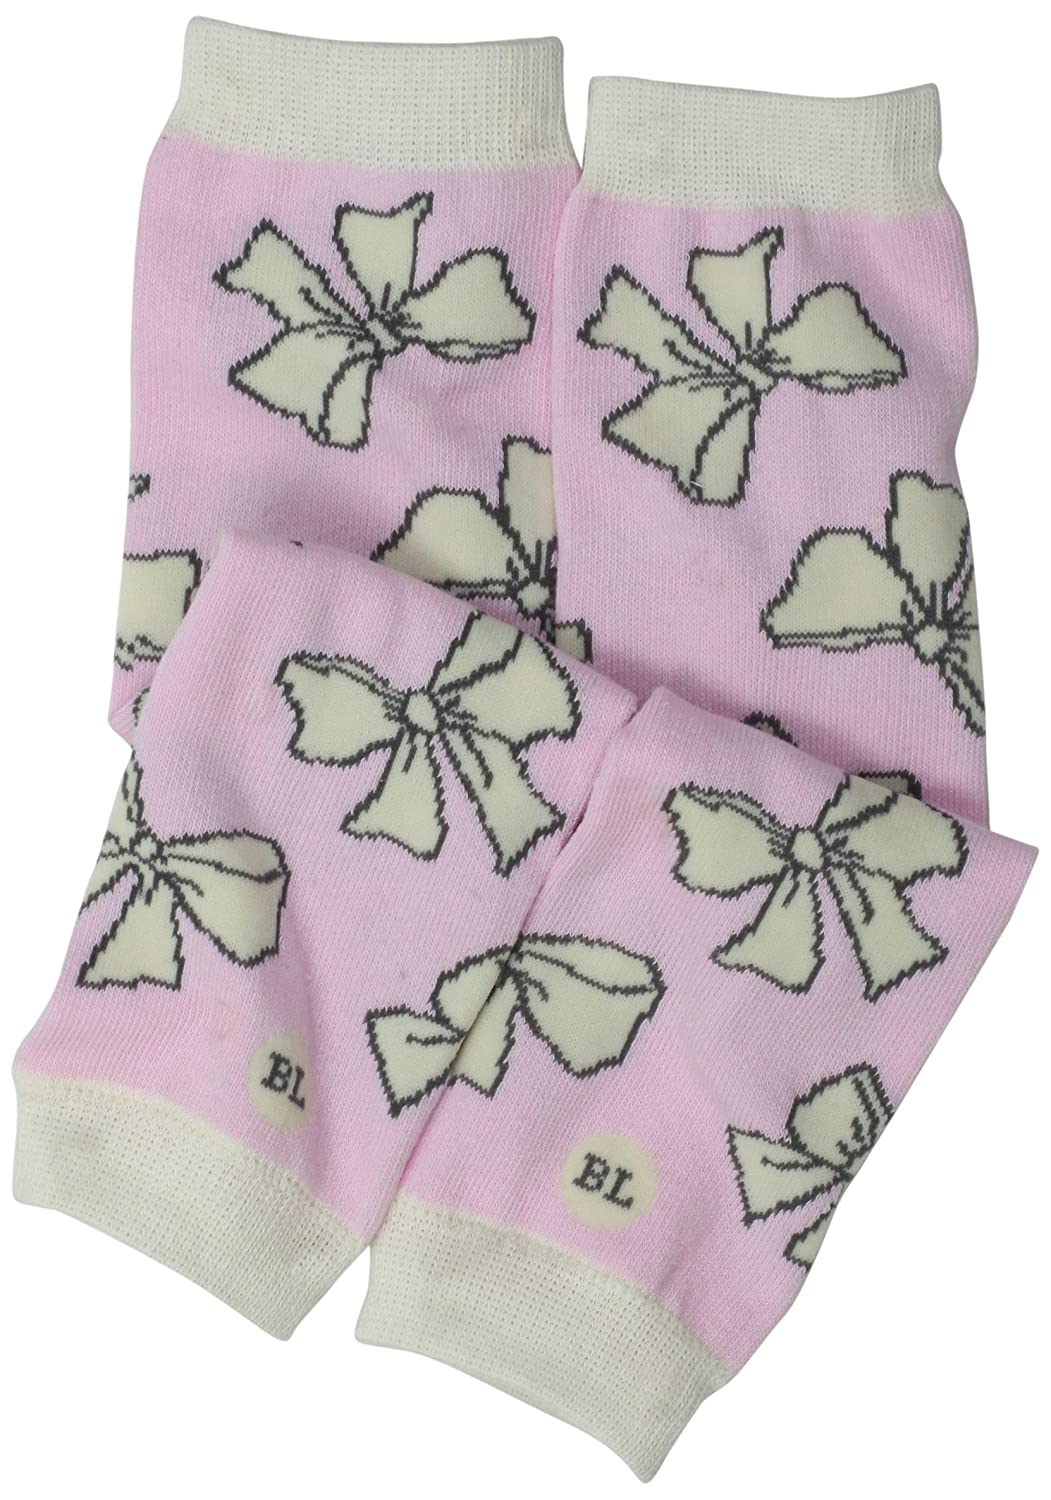 BabyLegs Baby Girls' Sashes BabyLegs Sashes-Leg Warmers Pink/Cream BabyLegs® BL13-0061